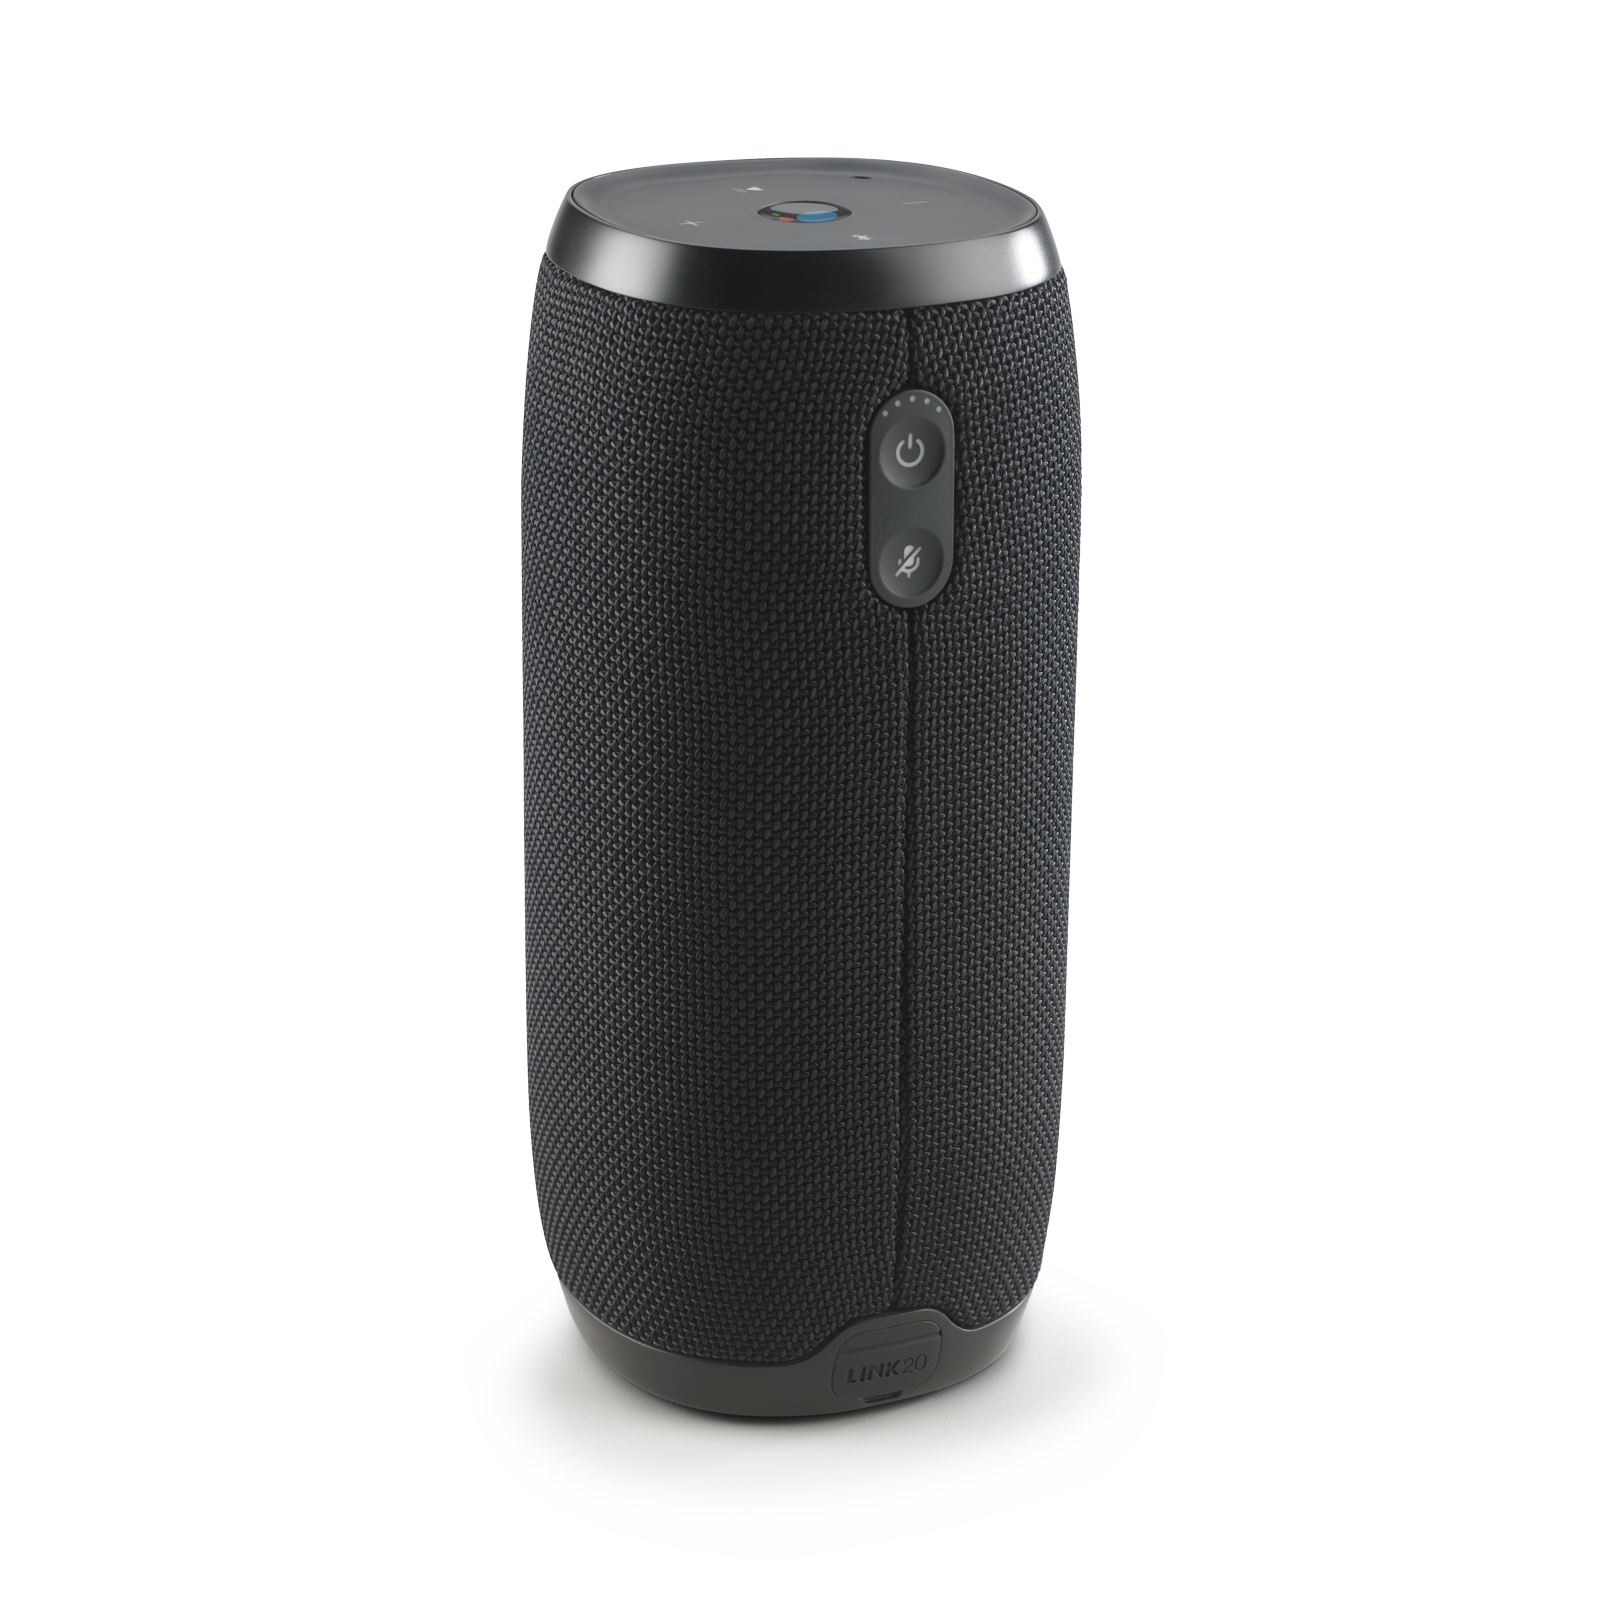 JBL Link 20 - Black - Voice-activated portable speaker - Back